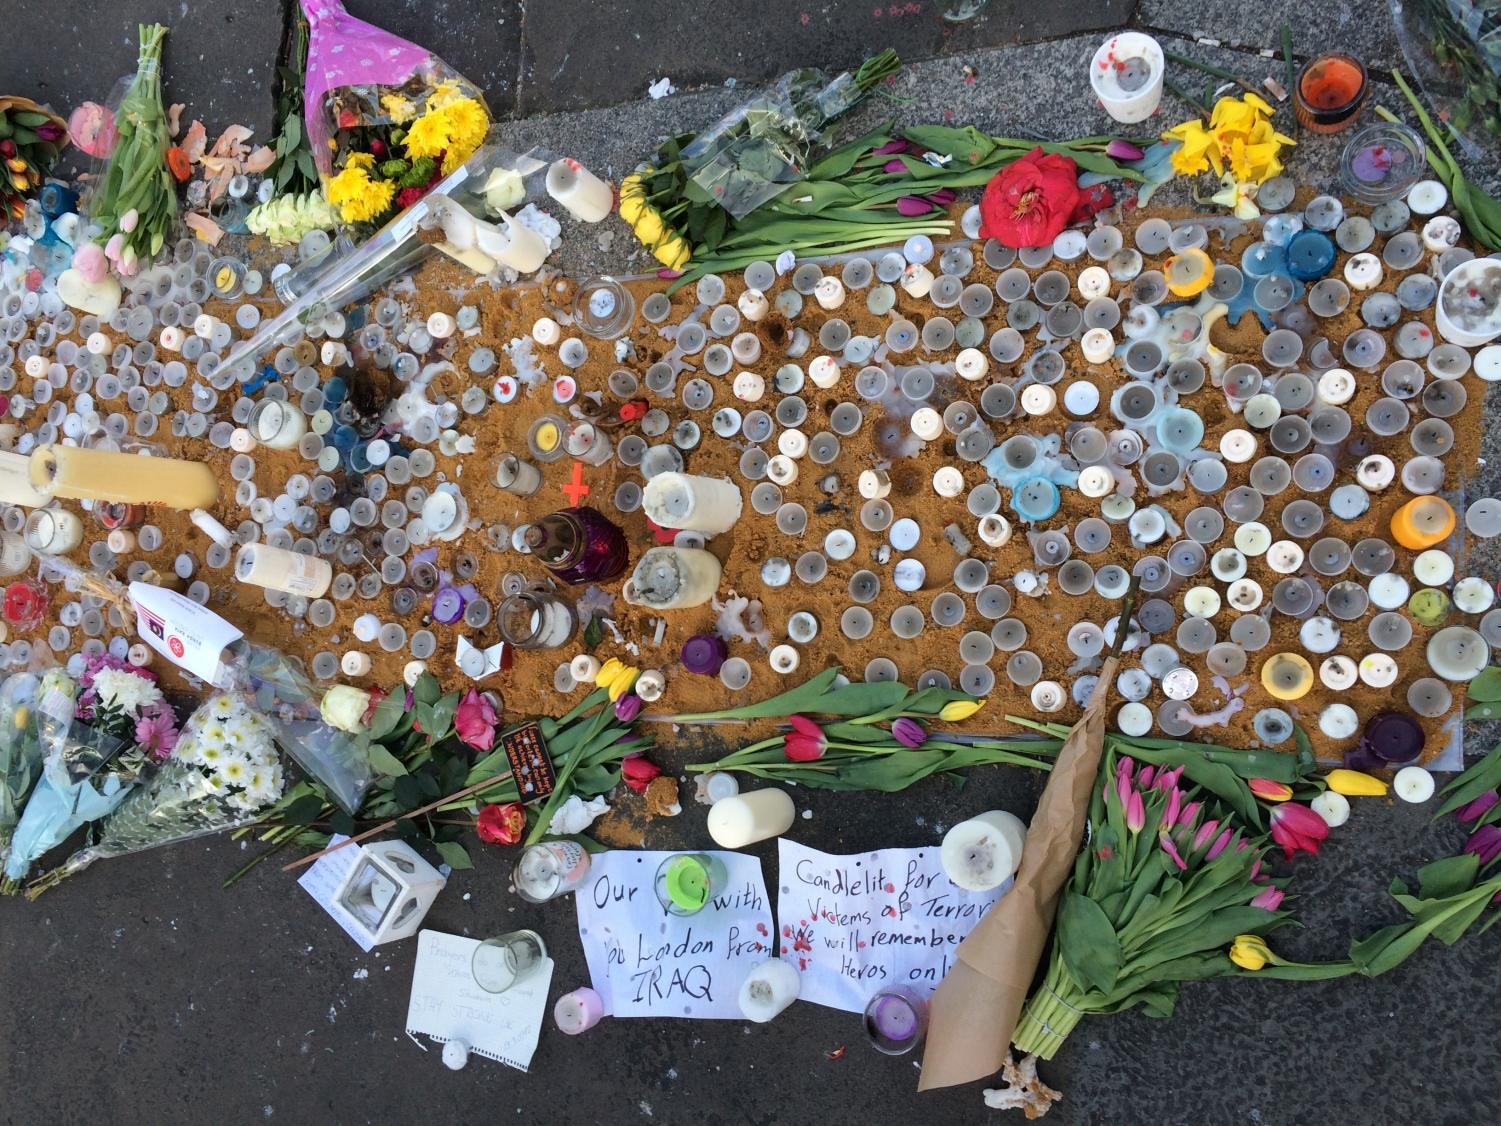 LONDON, ENGLAND--A makeshift memorial for those who lost their lives in the Westminster Bridge attack